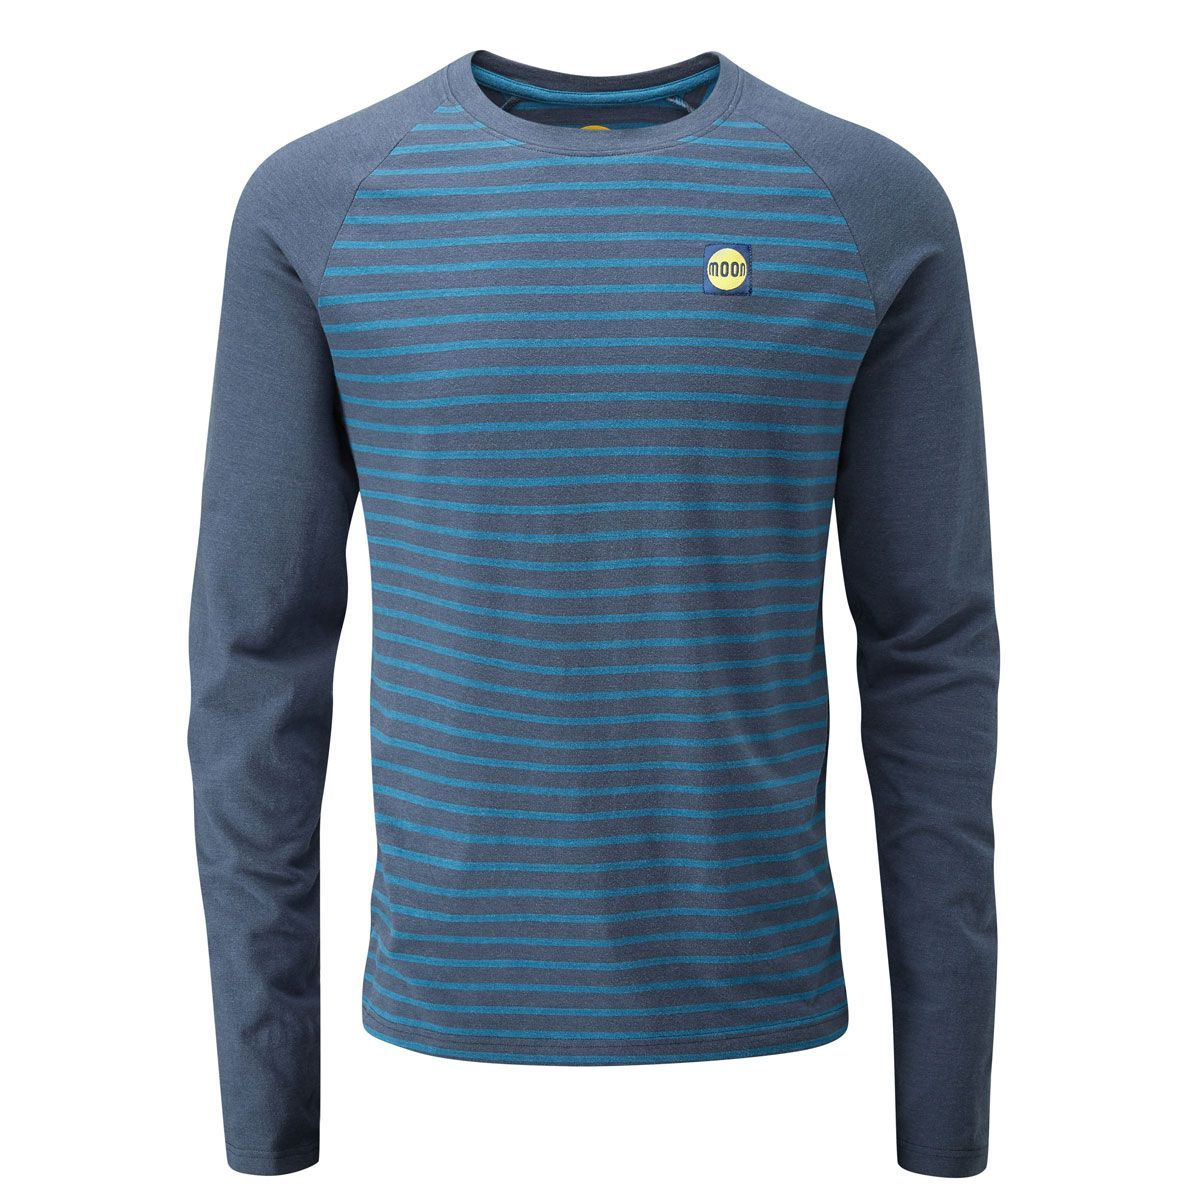 Front view of Moon Striped Bamboo Tech Long Sleeve T-Shirt in Dark blue with light blue pin stripes